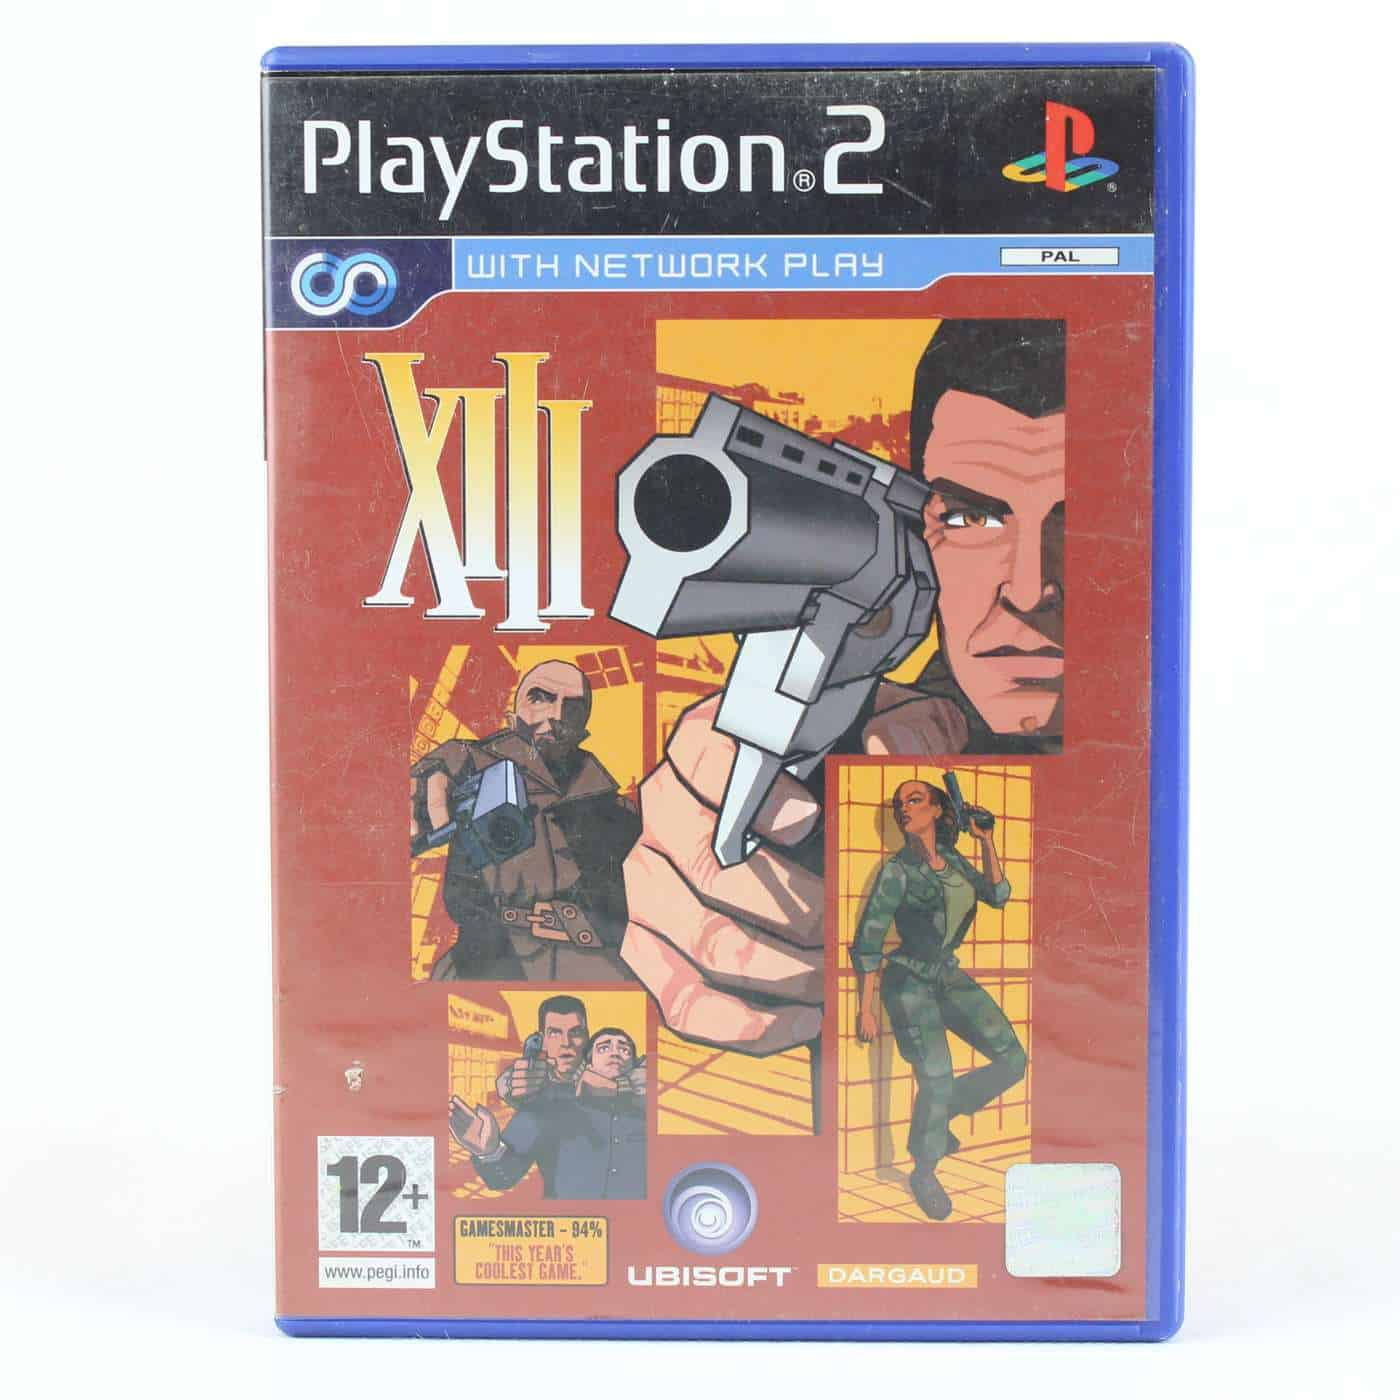 XIII (Playstation 2 / PS2)